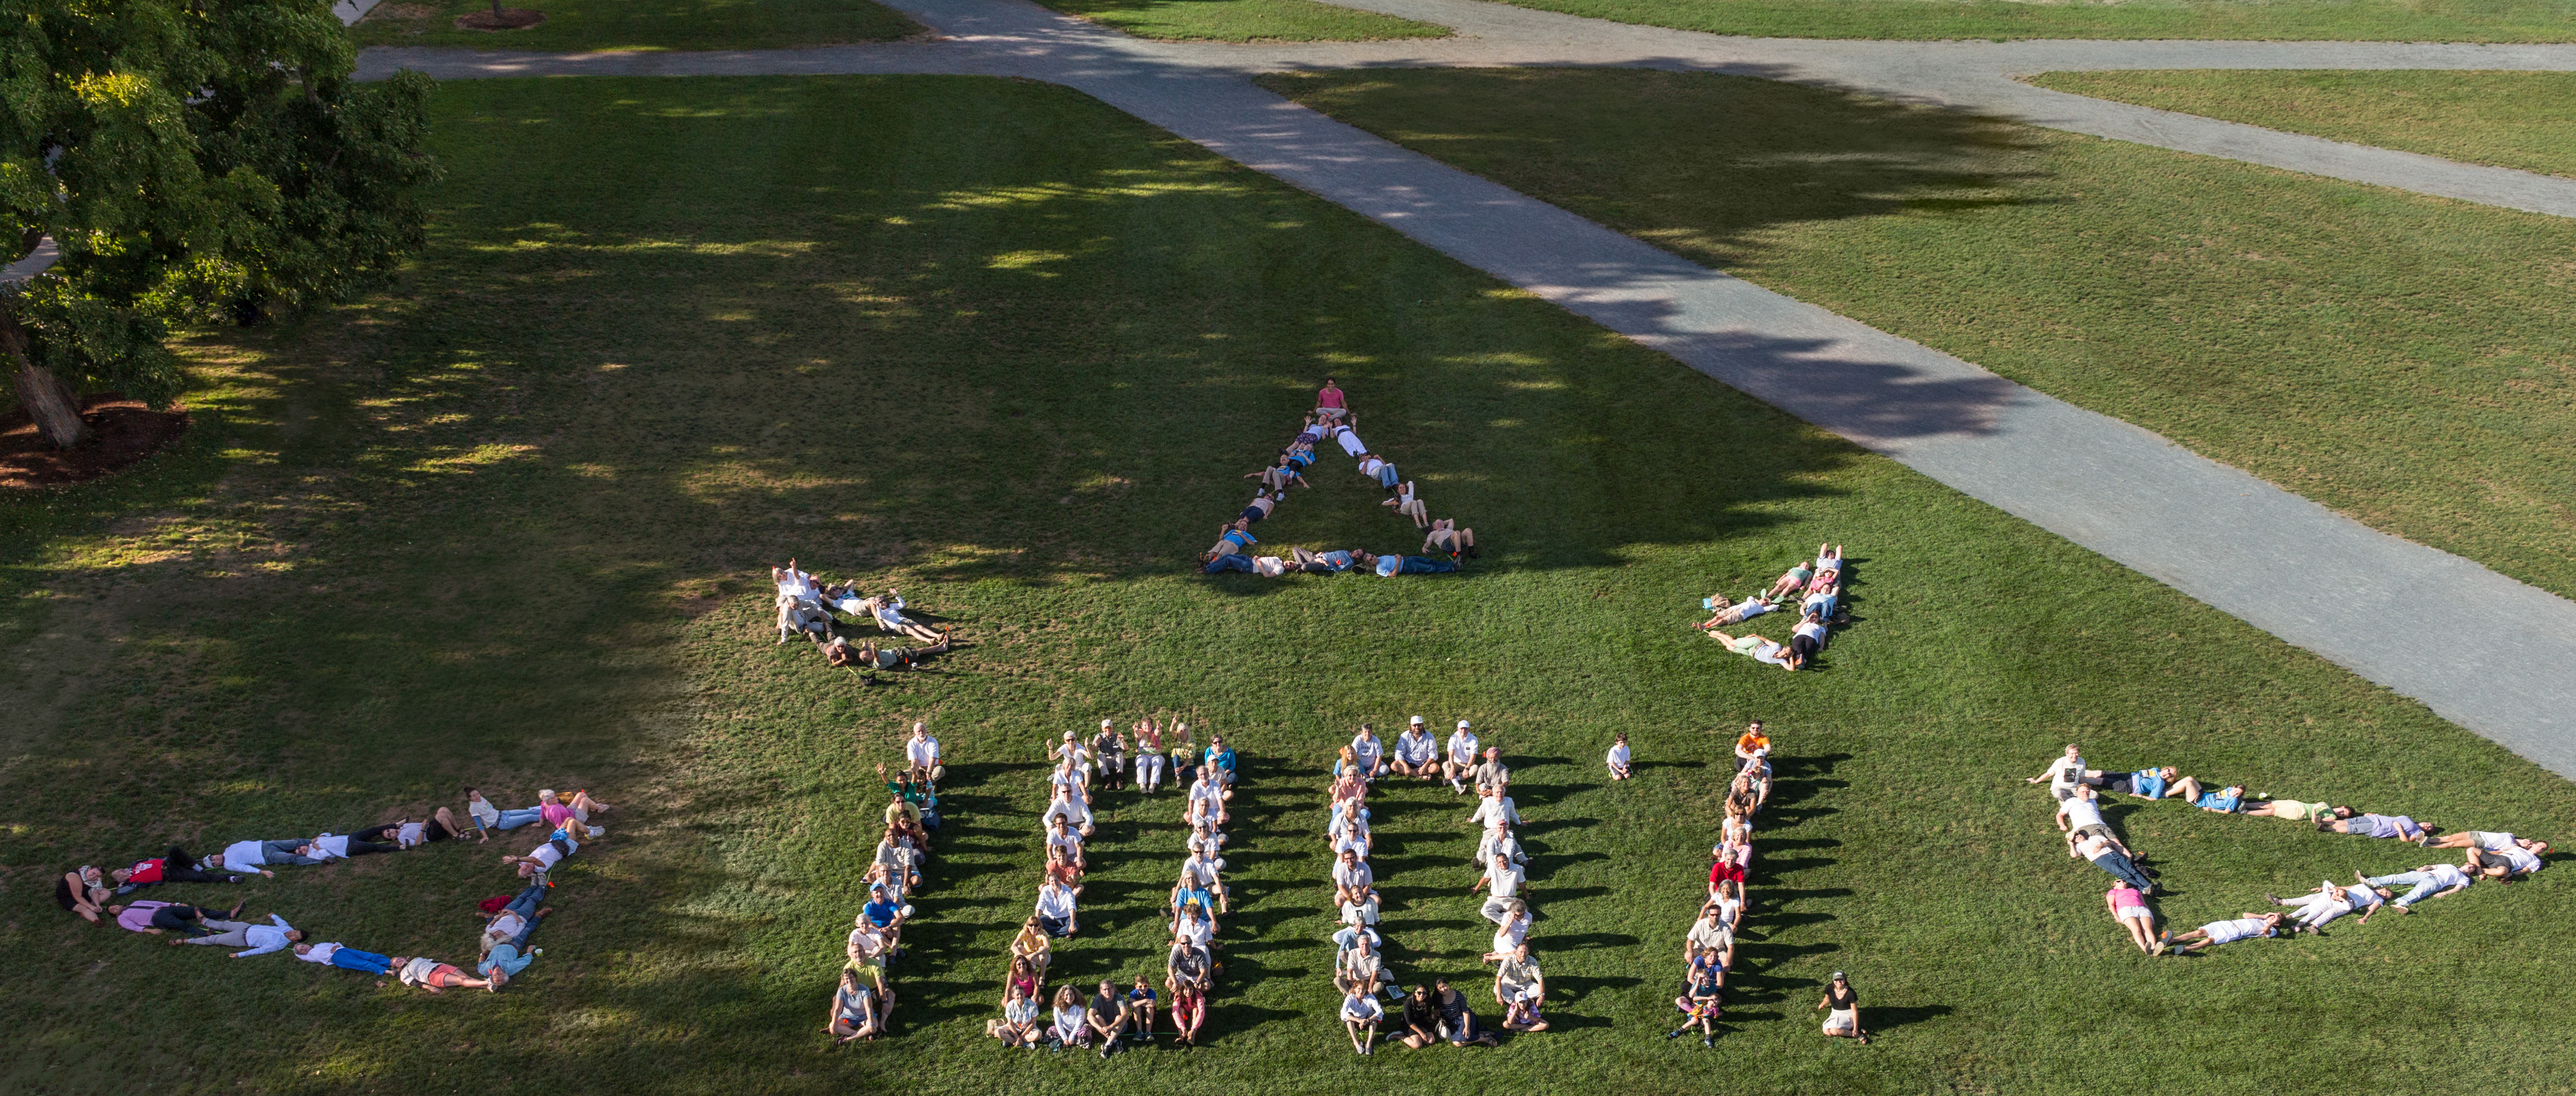 Over 125 people participated in this aerial art photo in Hanover, NH to show their support for 100% renewable energy. Photo: Rob Strong.